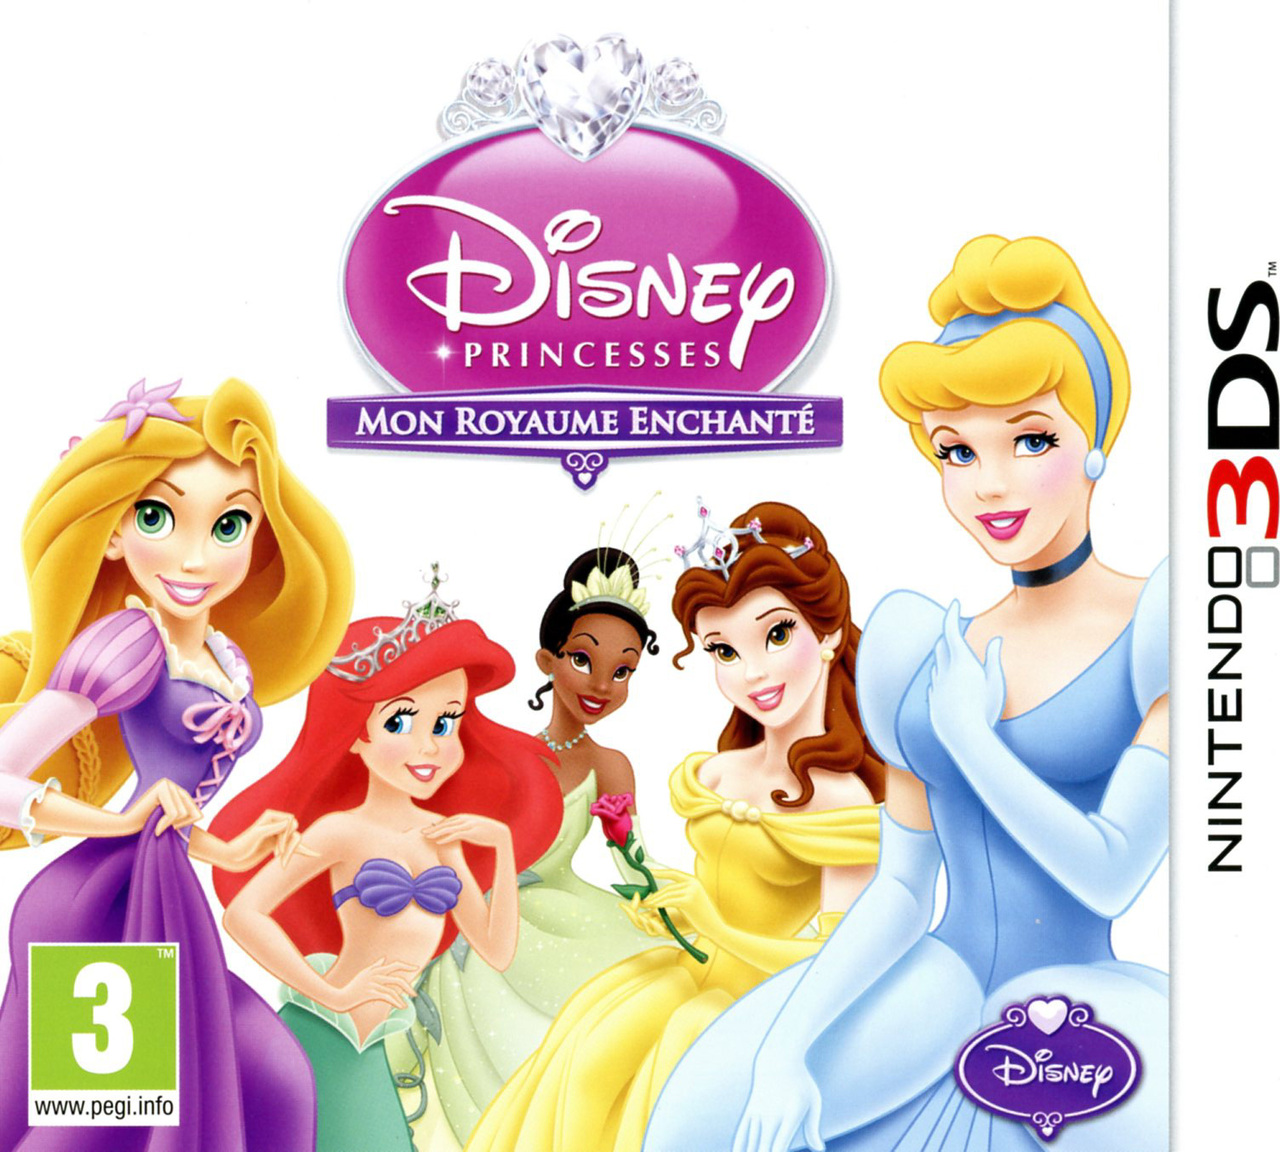 disney princesses mon royaume enchant sur nintendo 3ds. Black Bedroom Furniture Sets. Home Design Ideas